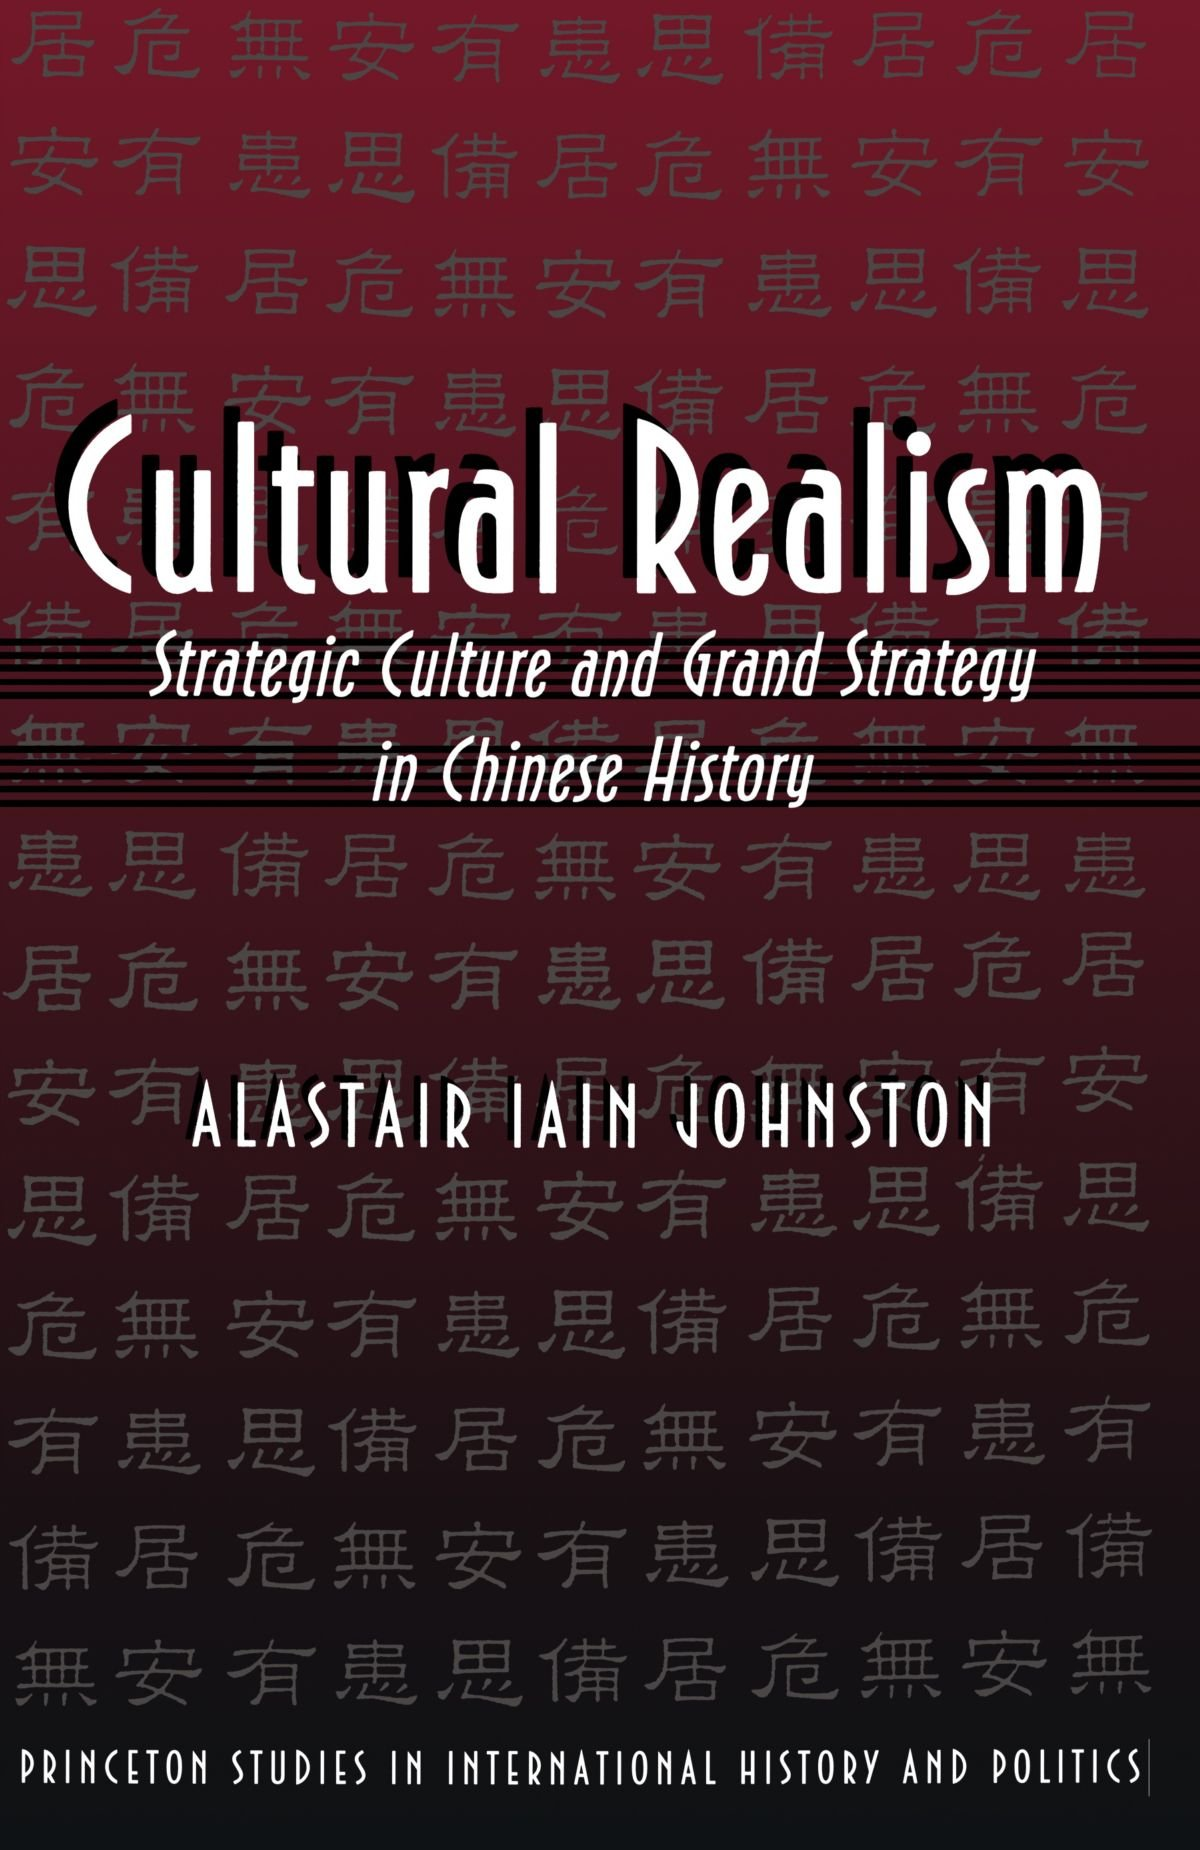 Cultural Realism: Strategic Culture and Grand Strategy in Chinese History  (Princeton Studies in International History and Politics) Paperback – 27  Jul 1998